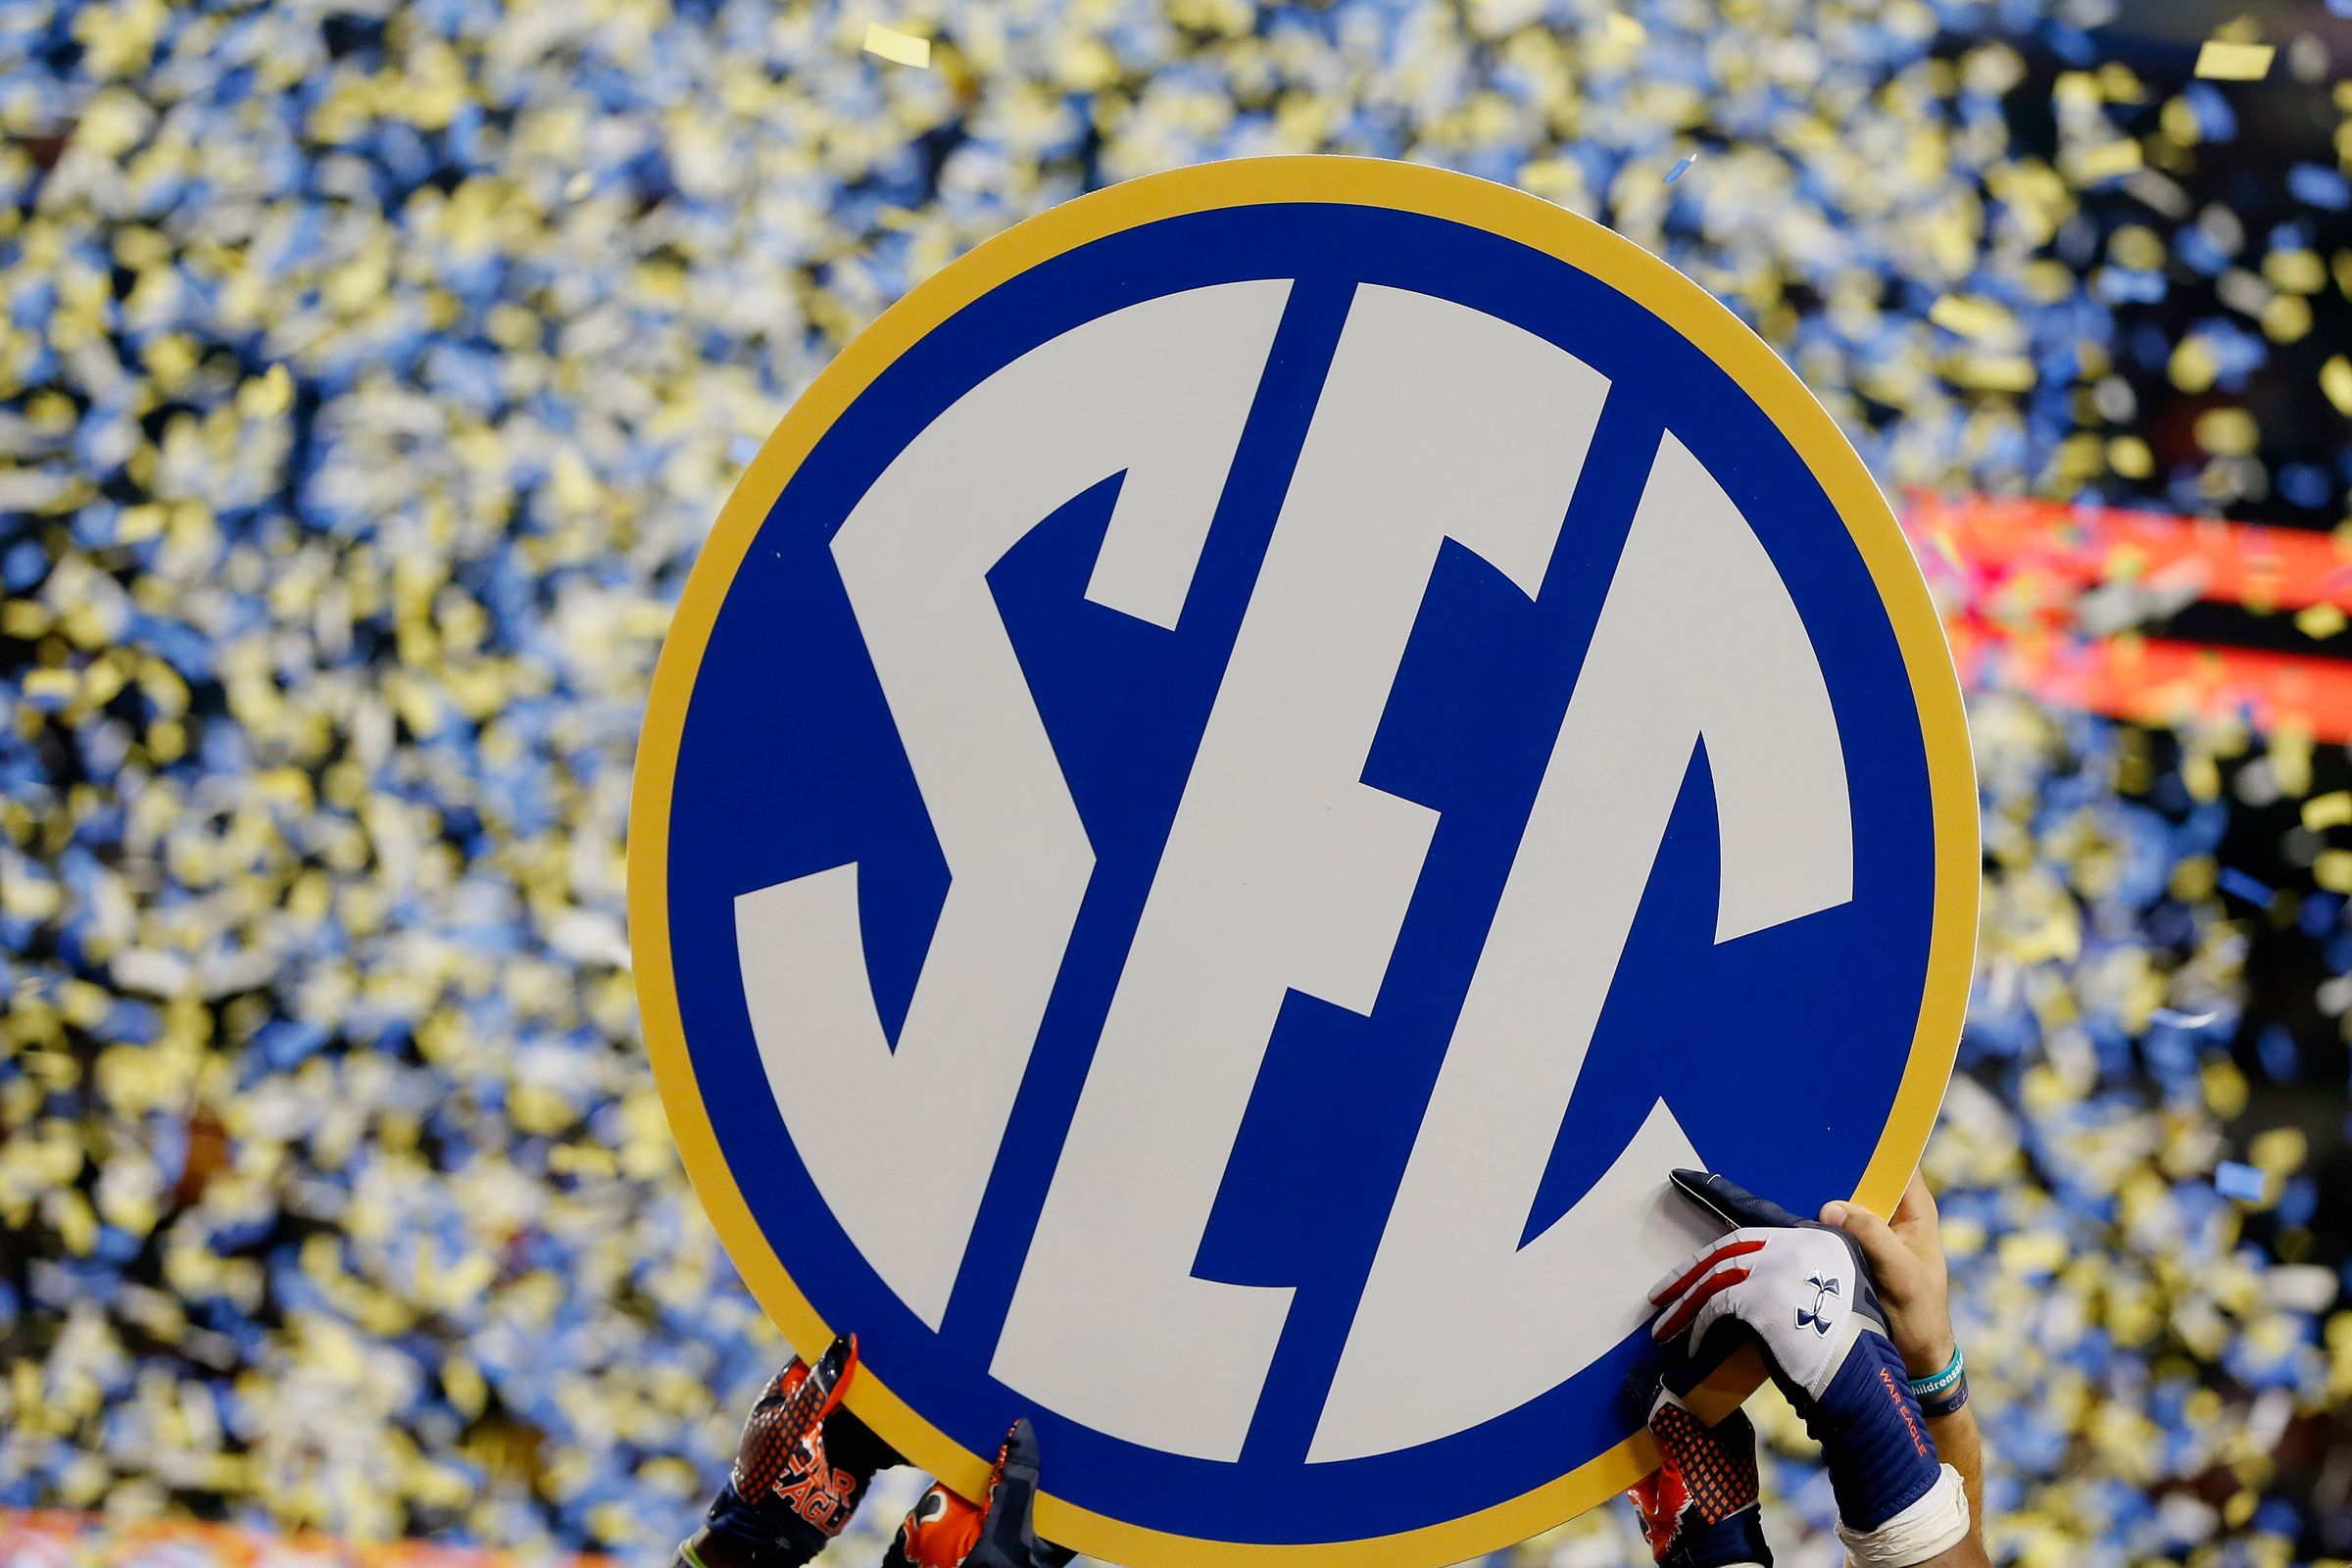 Best of the SEC from the 2015 bowl season